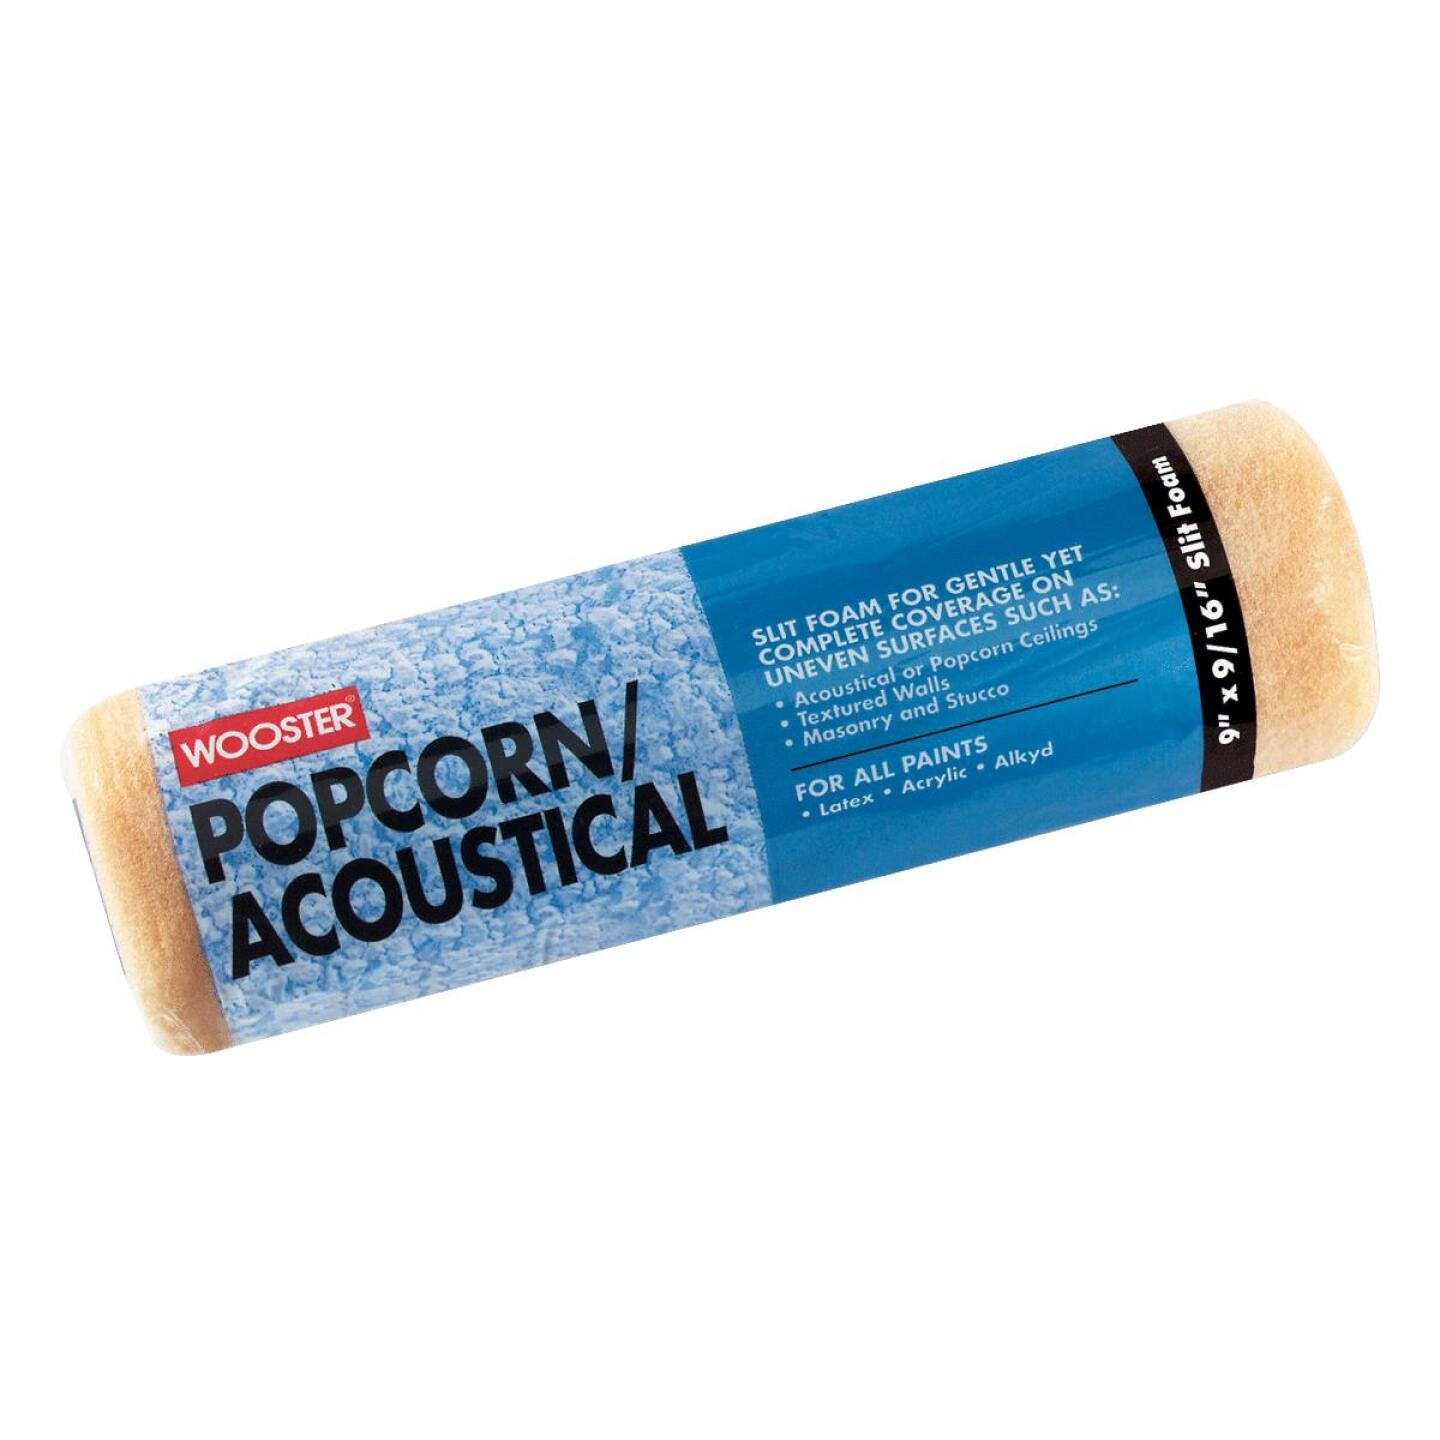 Wooster 9 In. Thick Popcorn/Acoustical Specialty Roller Cover Image 1